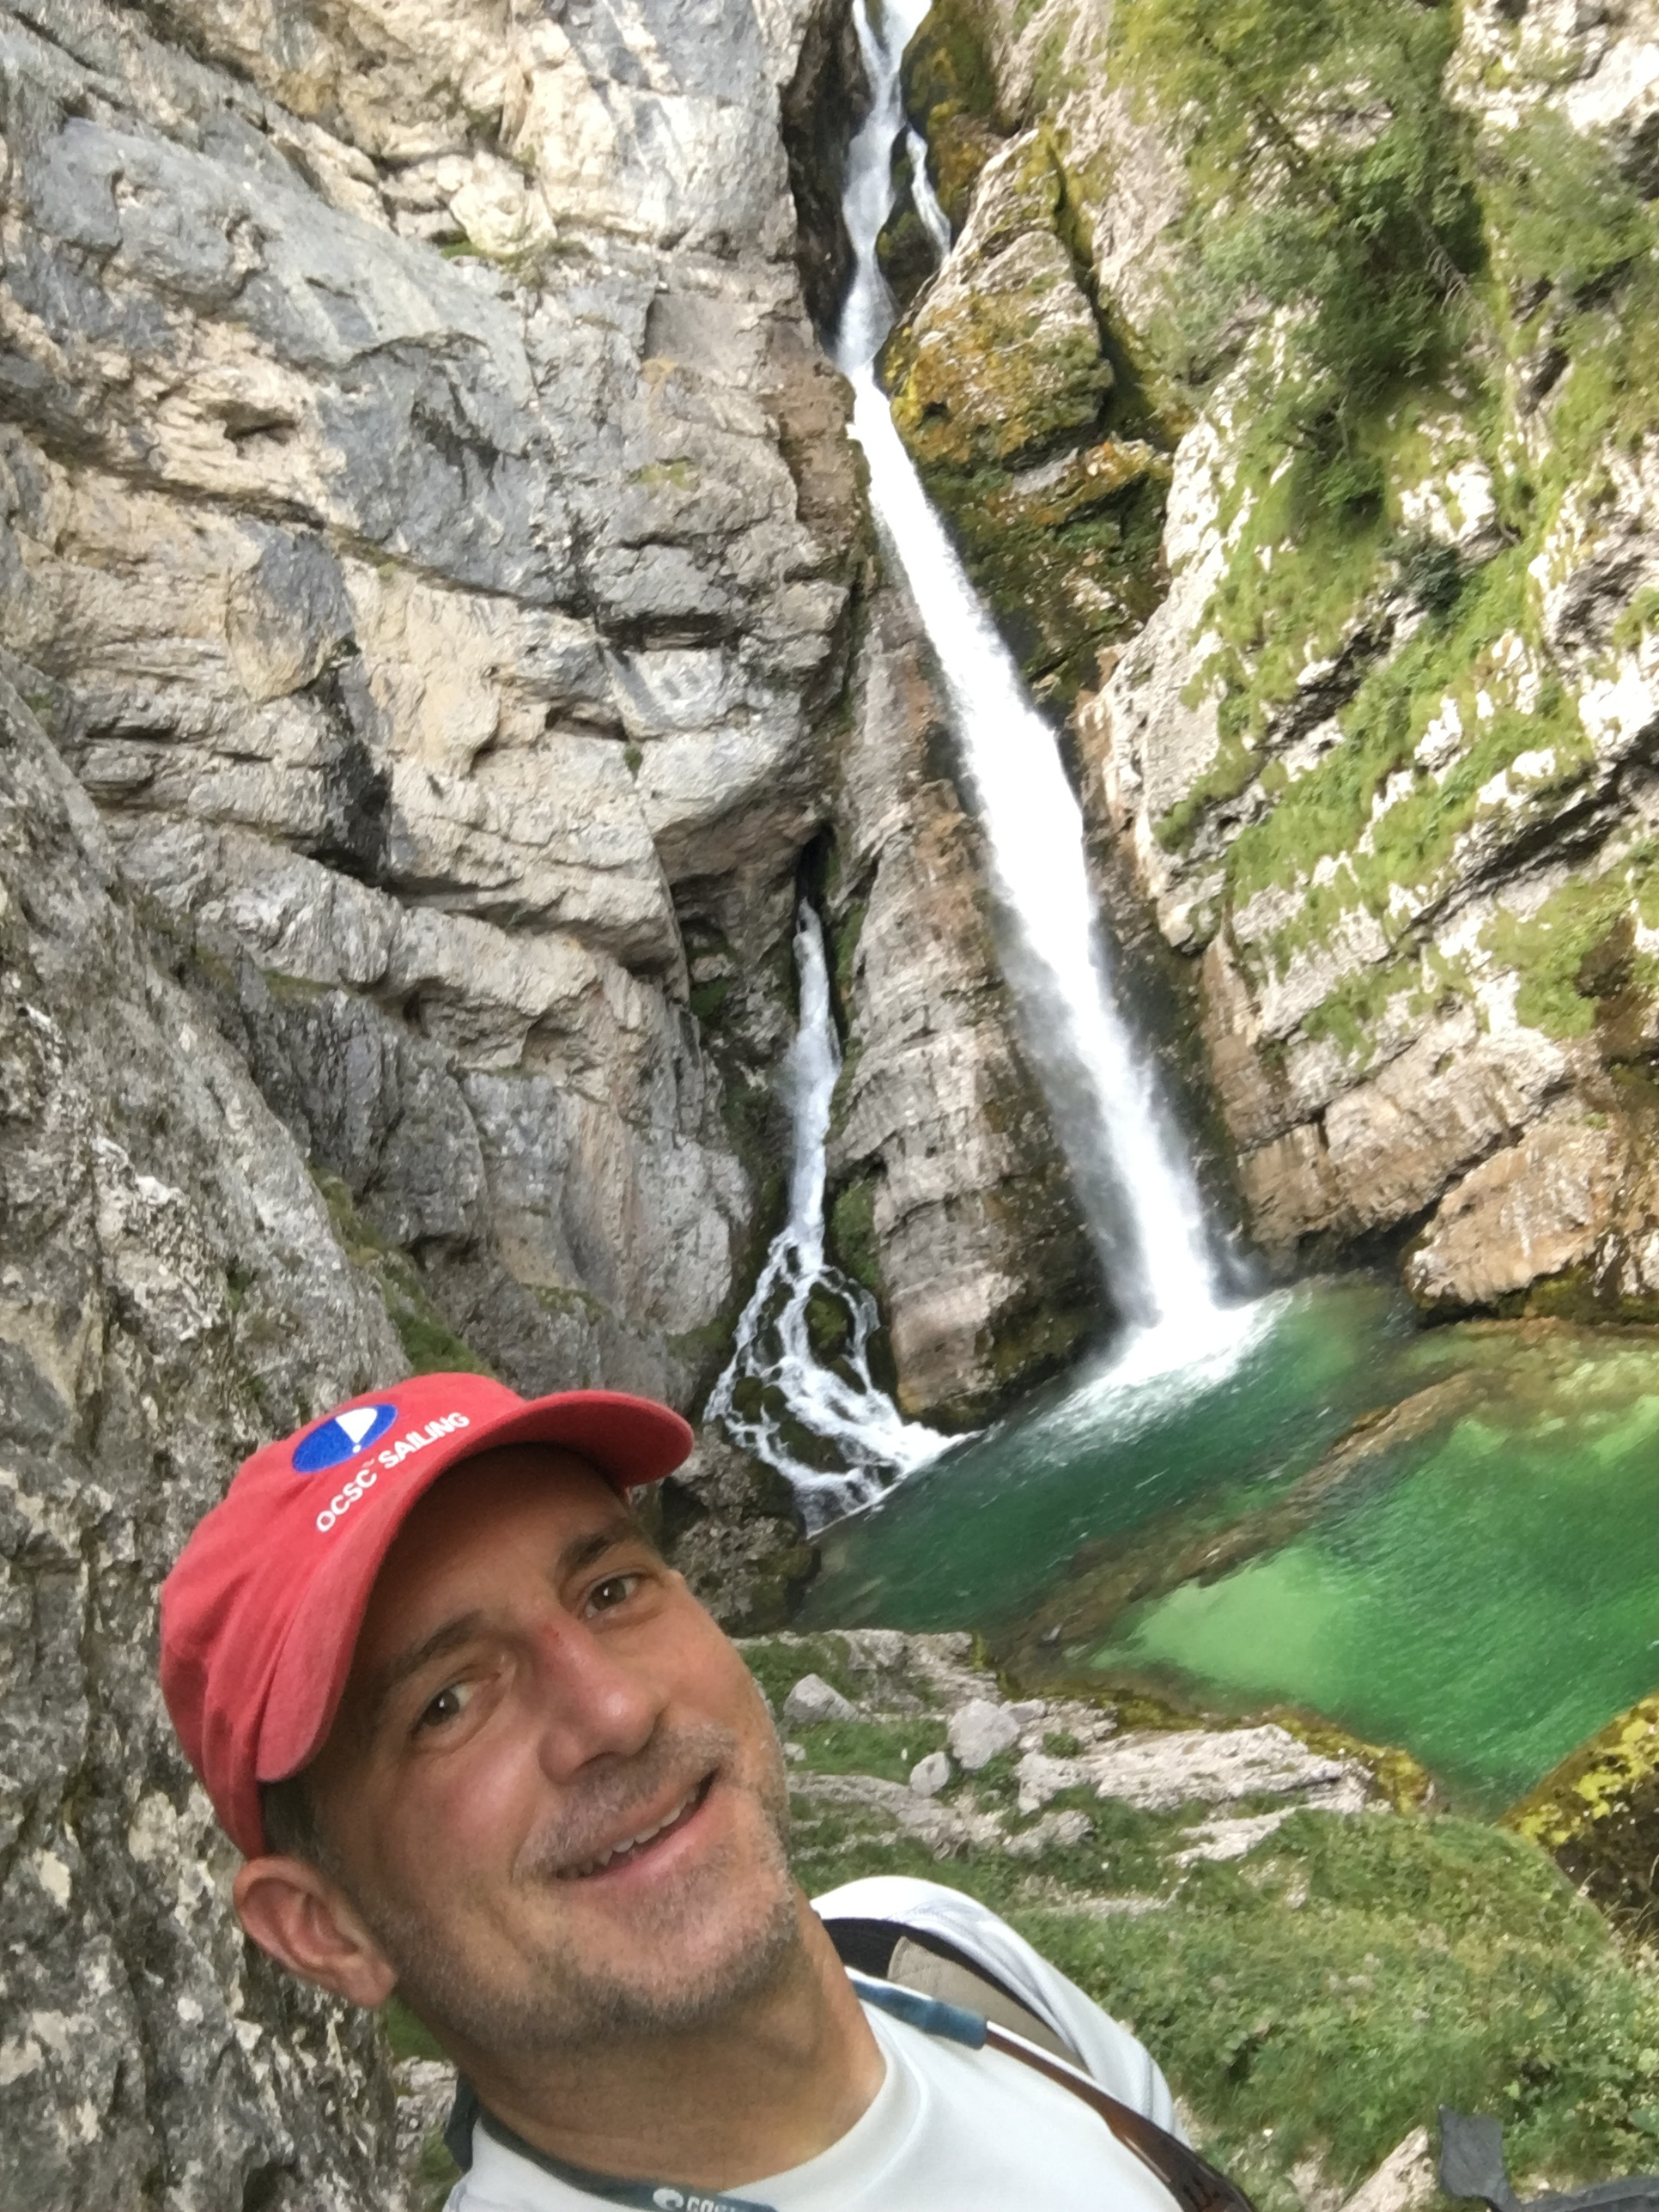 One more of the waterfall, with me in the picture this time. :-)